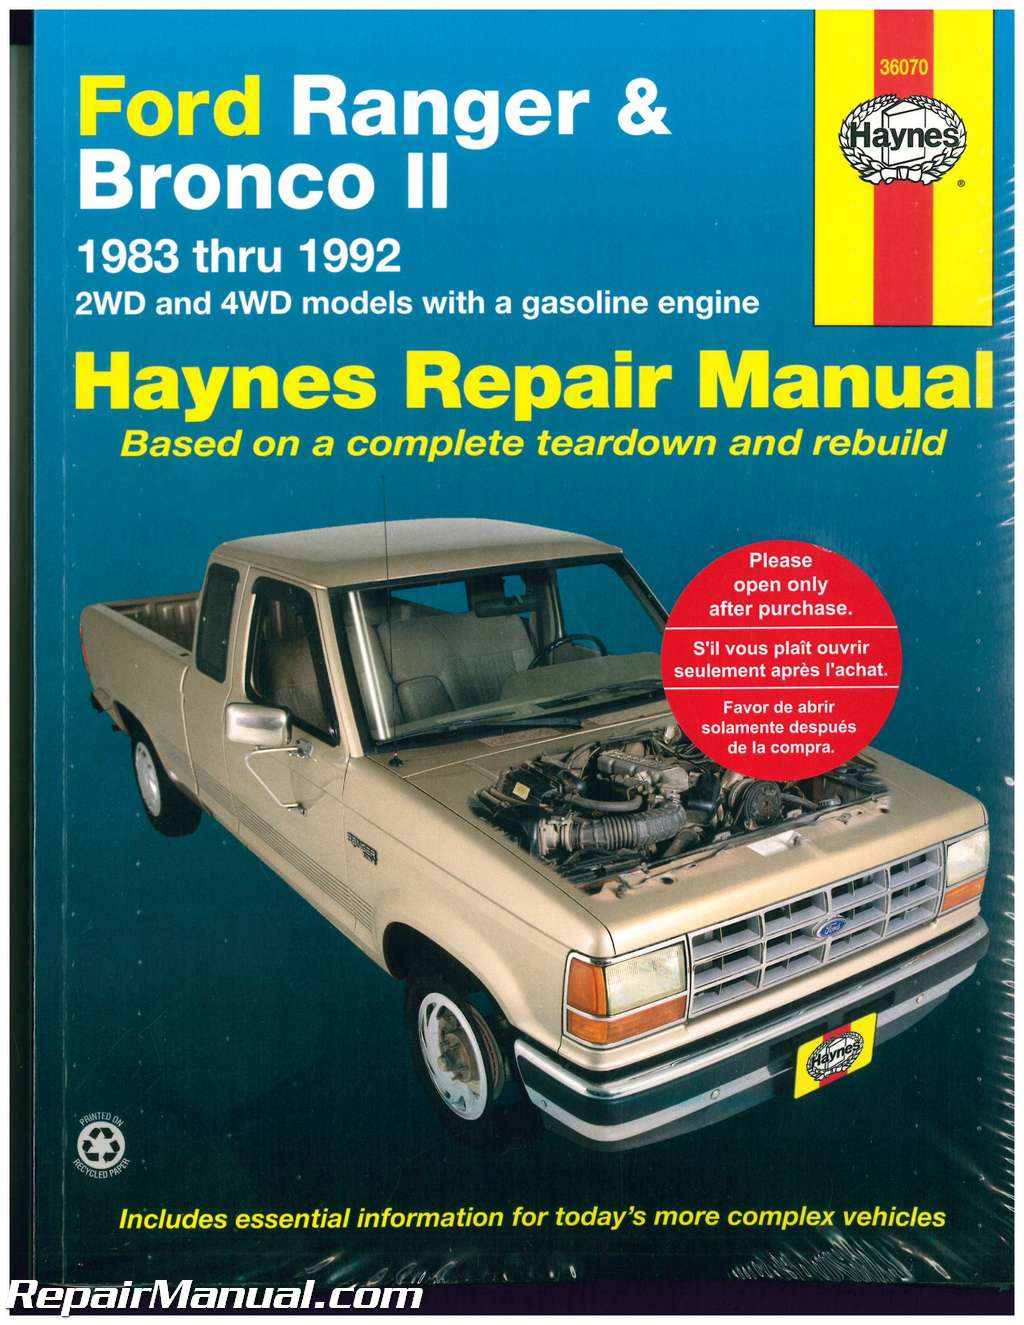 1987 ford ranger factory service manual